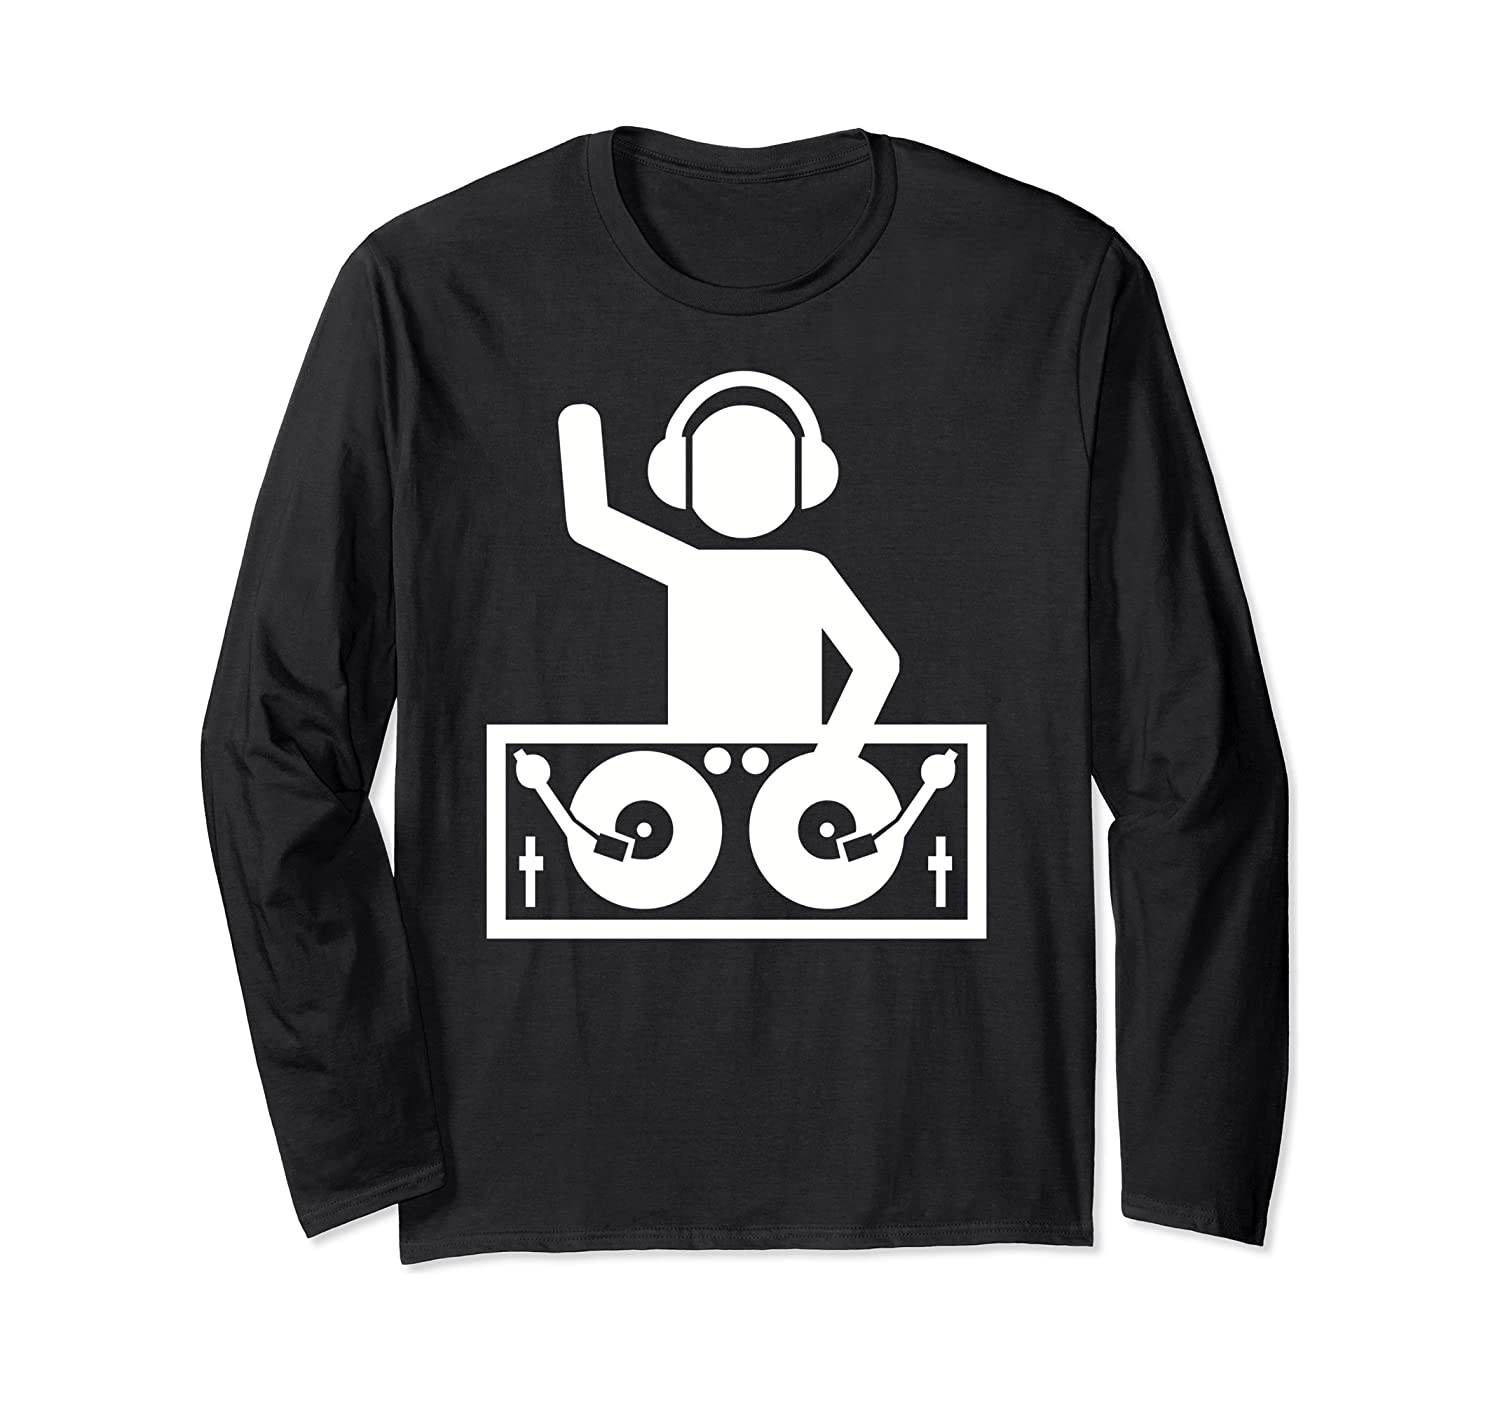 Dj With Turntables Long Sleeve T-shirt